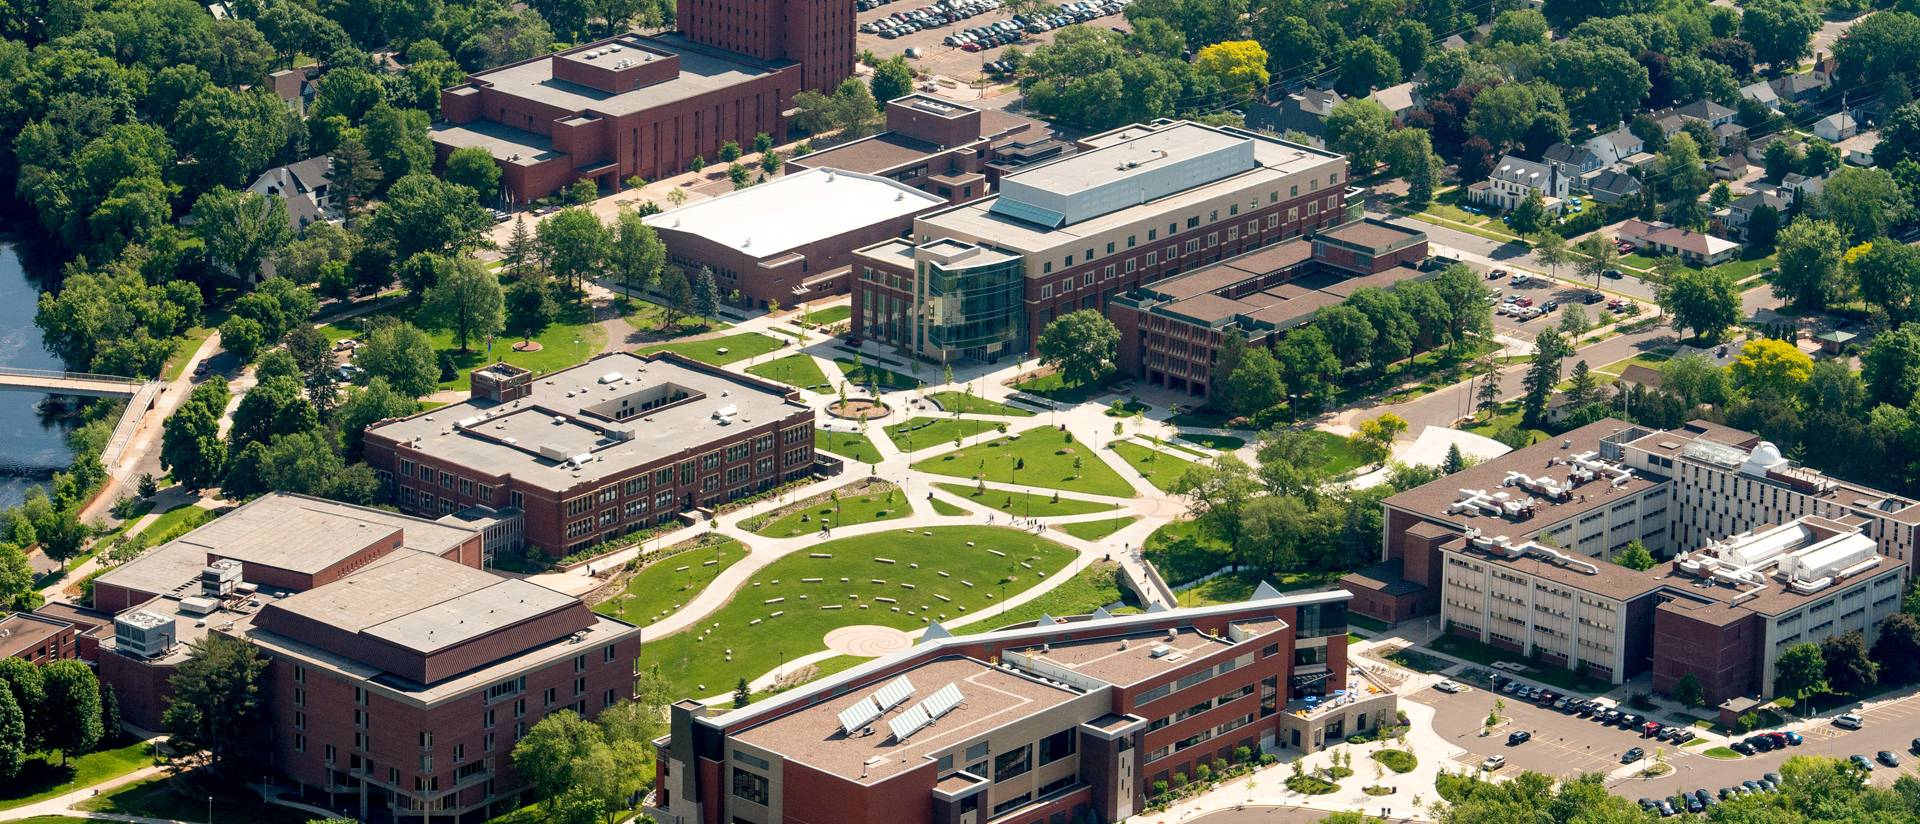 aerial view of UW-Eau Claire central lower campus